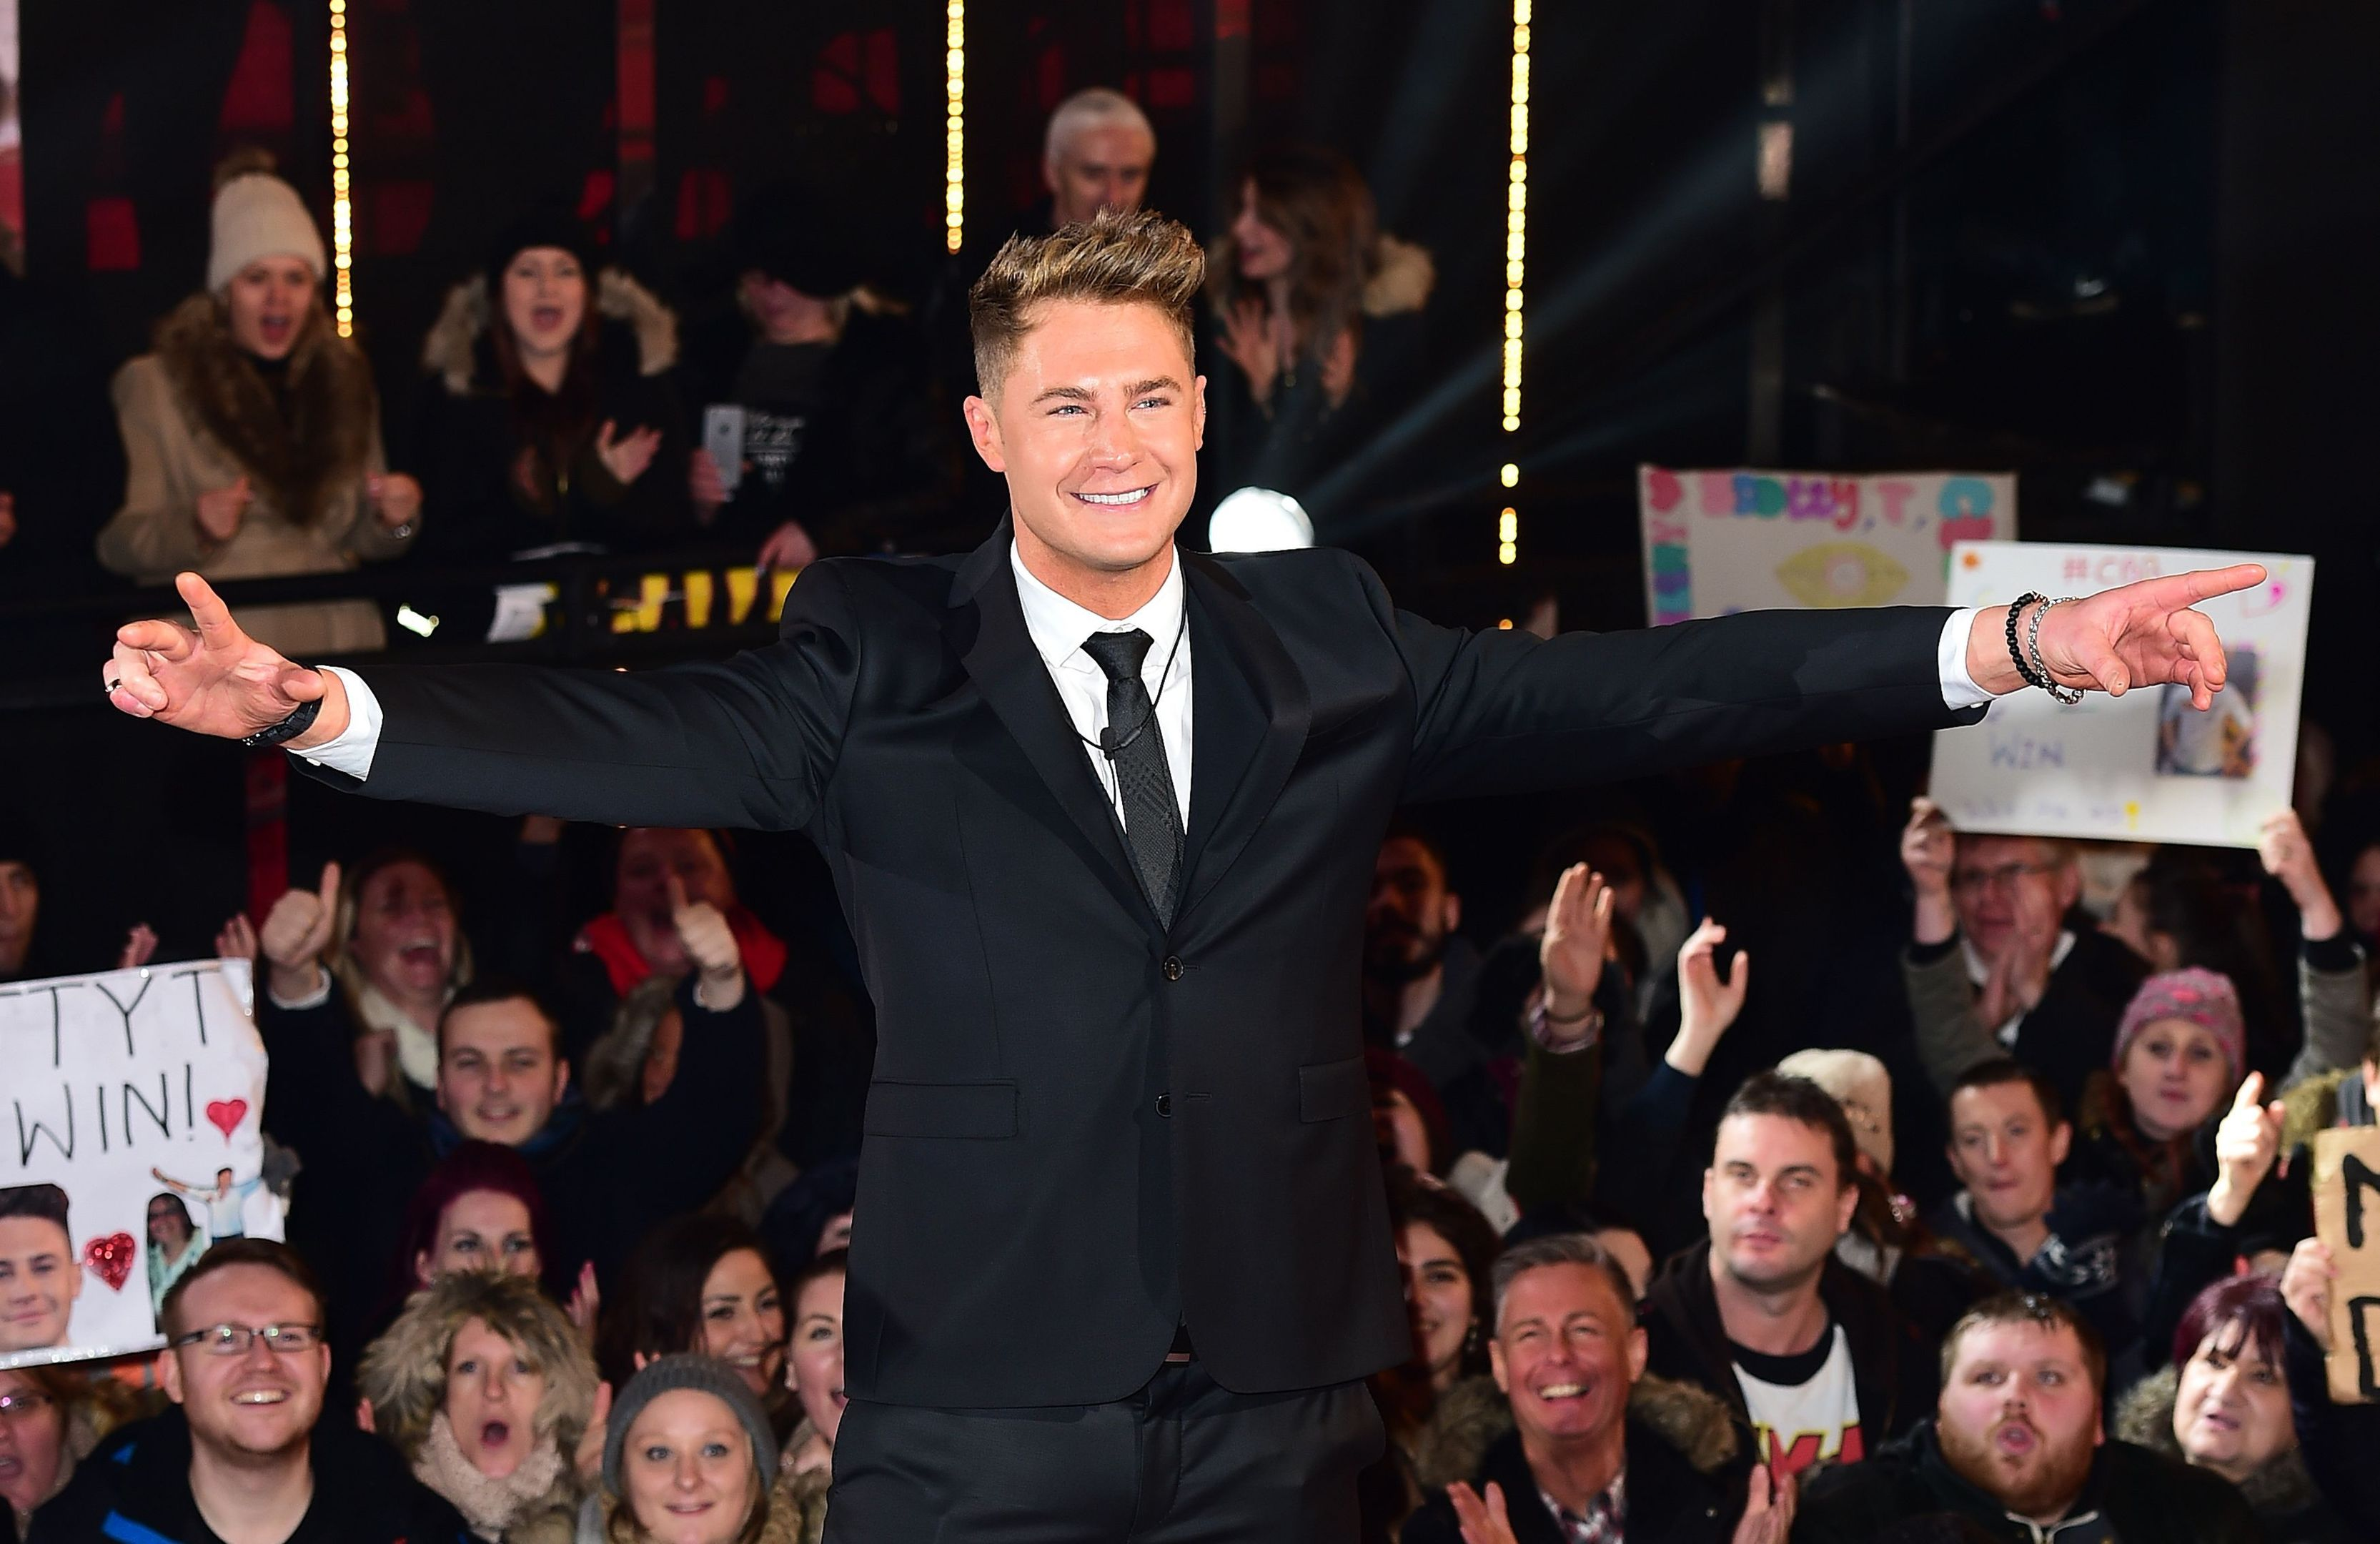 Scotty T has had to pull out of an event in Dundee for the second time.